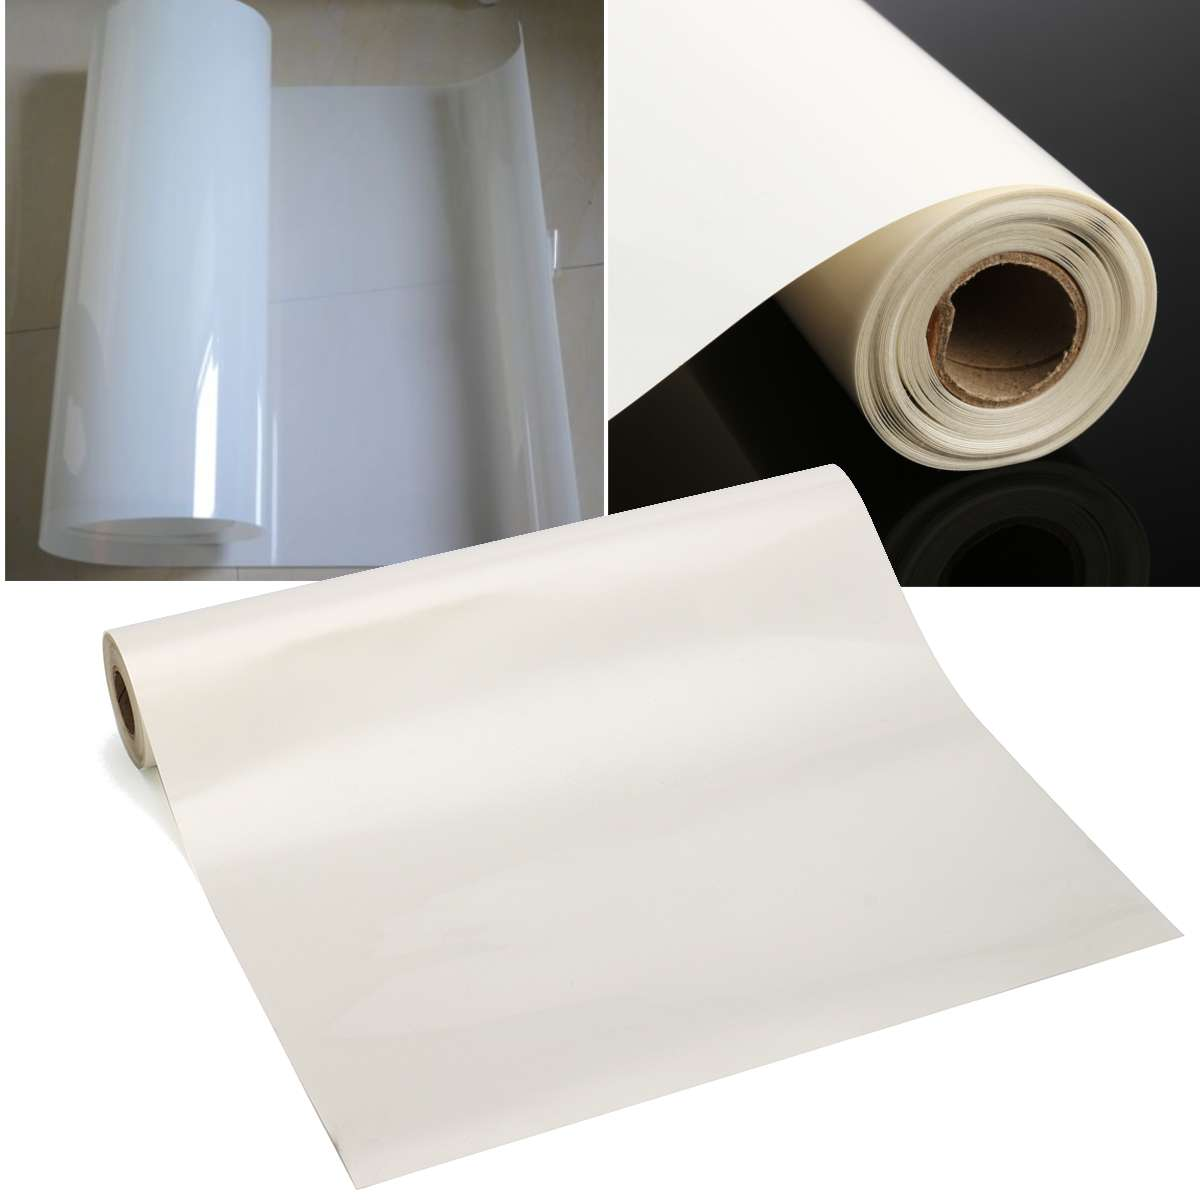 1 Roll Airbrush Stencil Mylar Film Sheet Polyester Painting 10 Mil Thick 10''x5 Yards Spray Gun/ Template Polyester Film Sheet